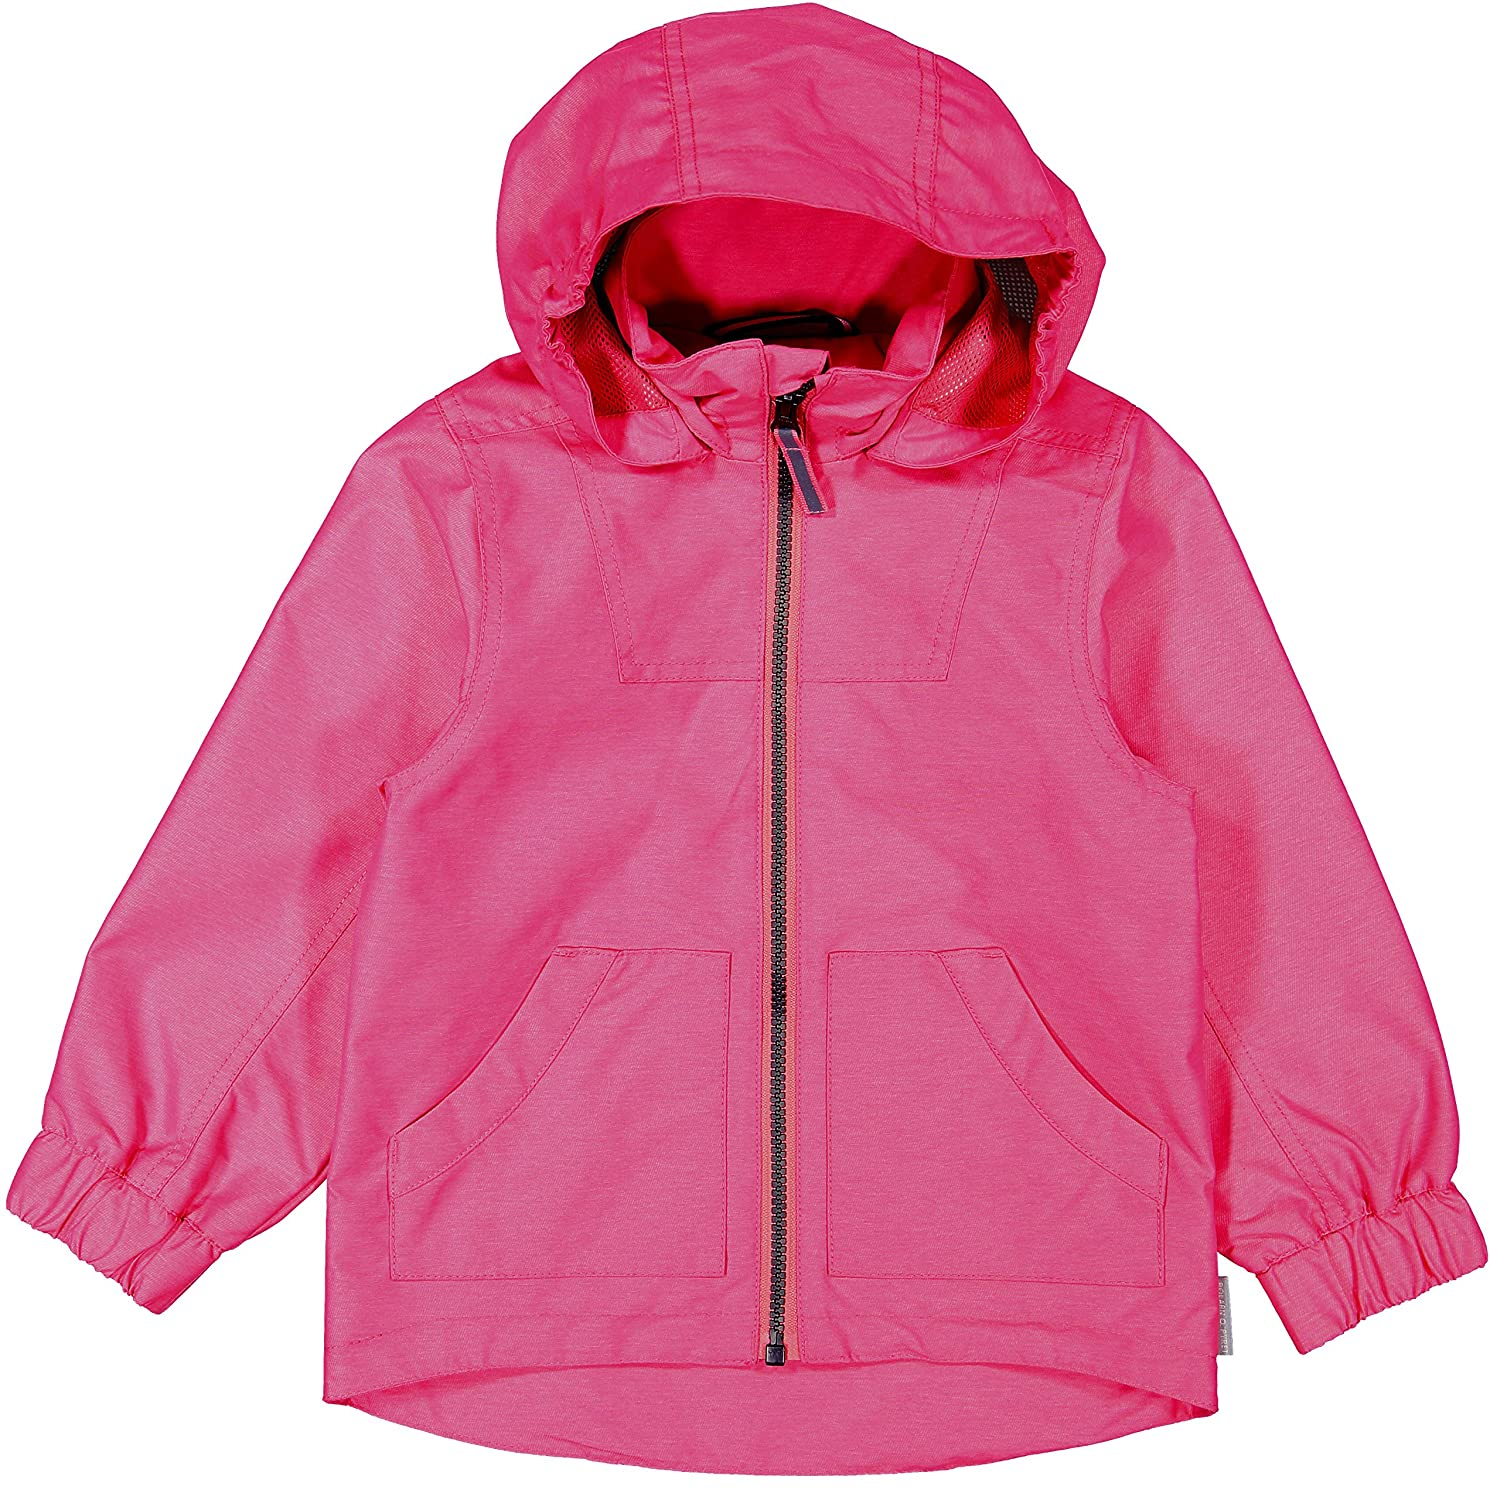 2-12 Years Waterproof Packaway Kids Shell Jacket Pyret Girls Pink Polarn O